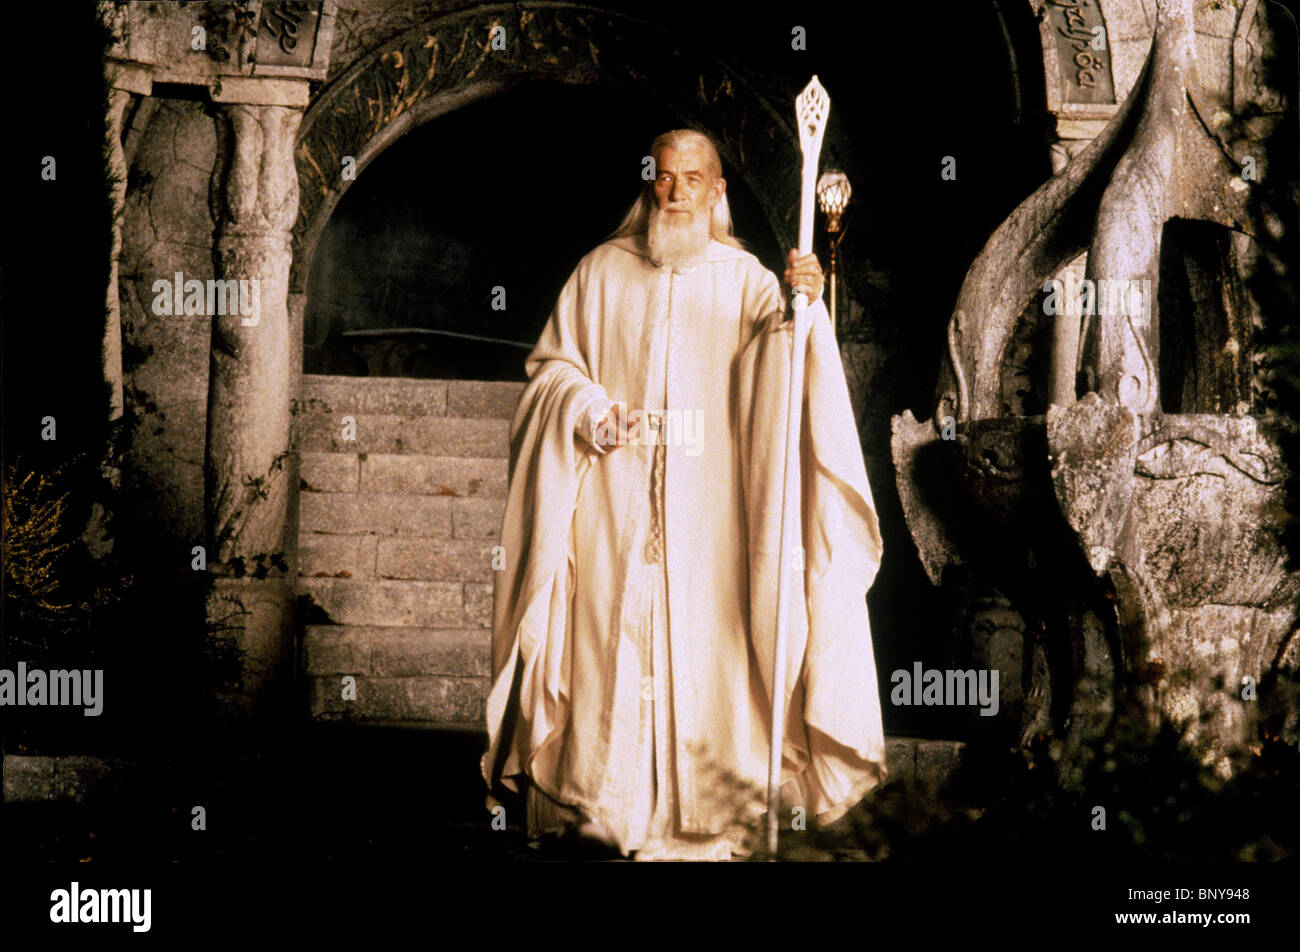 SIR IAN MCKELLEN THE LORD OF THE RINGS III: THE RETURN OF THE KING (2003) - Stock Image